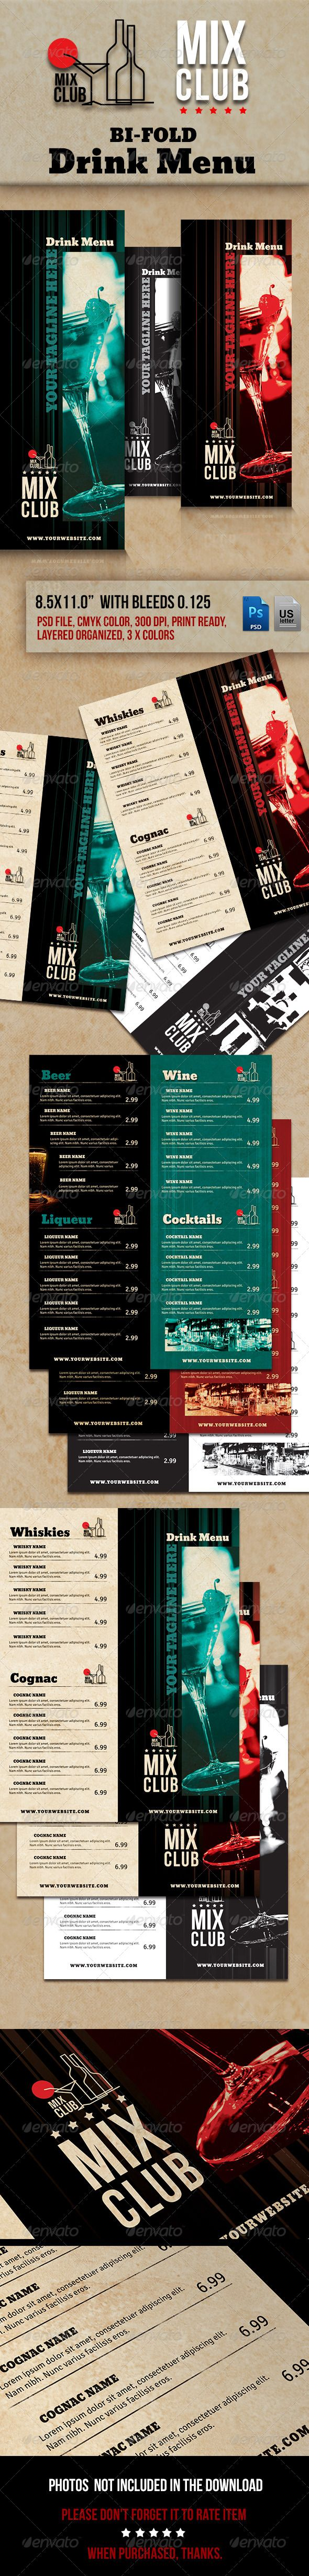 """Drink Menu #GraphicRiver Drink Menu """"Mix Club"""". Modern Lounge and Bar Drink Menu. 2 X PSD files. 3 Color Variations. US letter format, 8.5×11"""", with bleeds. CMYK Color Format, 300dpi, Print Ready. Layered Organized. Not included images. Free fonts: .fontsquirrel /fonts/signika?q%5Bterm%5D=signika&q%5Bsearch_check%5D=Y .fontsquirrel /fonts/bevan?q=bevan .fontsquirrel /fonts/bebas-neue Created: 11November13 GraphicsFilesIncluded: PhotoshopPSD Layered: Yes MinimumAdobeCSVersion: CS…"""